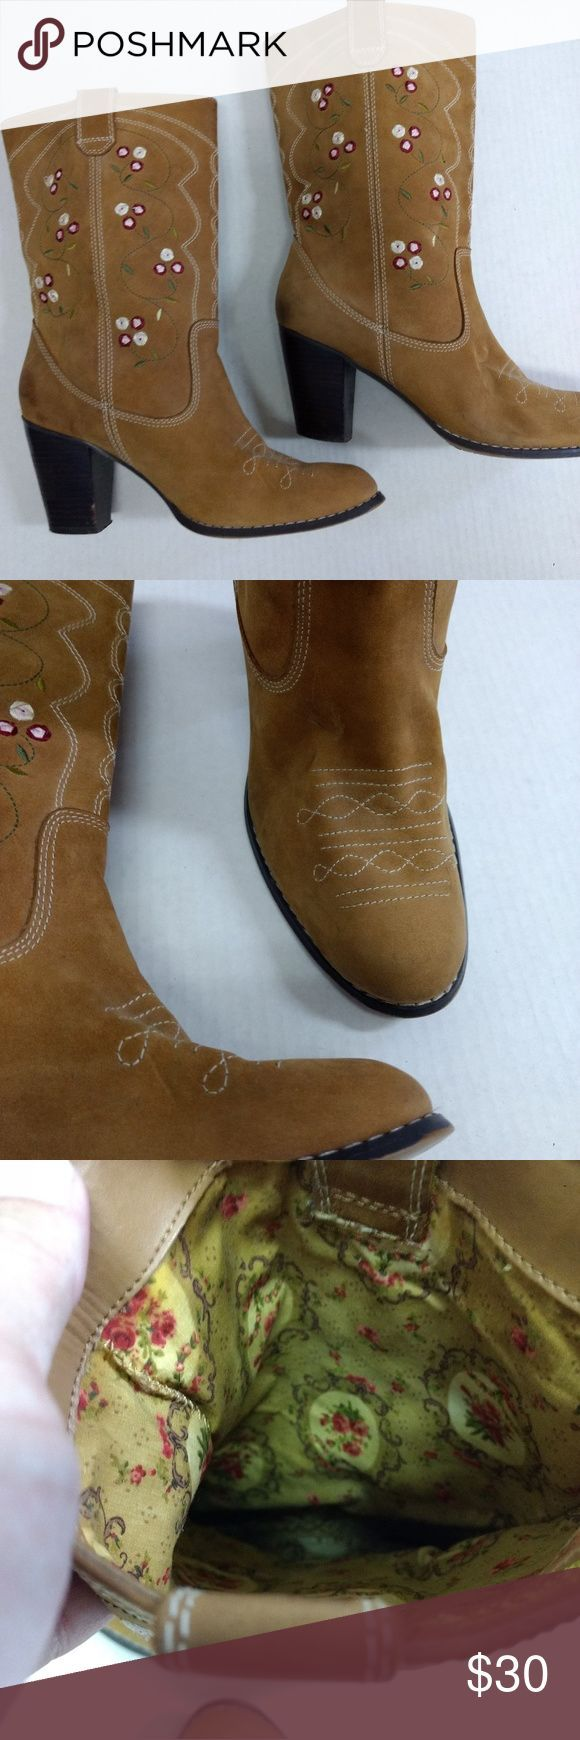 Seychelles Cowboy Boots Embroidered SZ 8.5 Brown Great Condition, Seychelles cow...,  ... Seychelles Cowboy Boots Embroidered SZ 8.5 Brown Great Condition, Seychelles cow...,